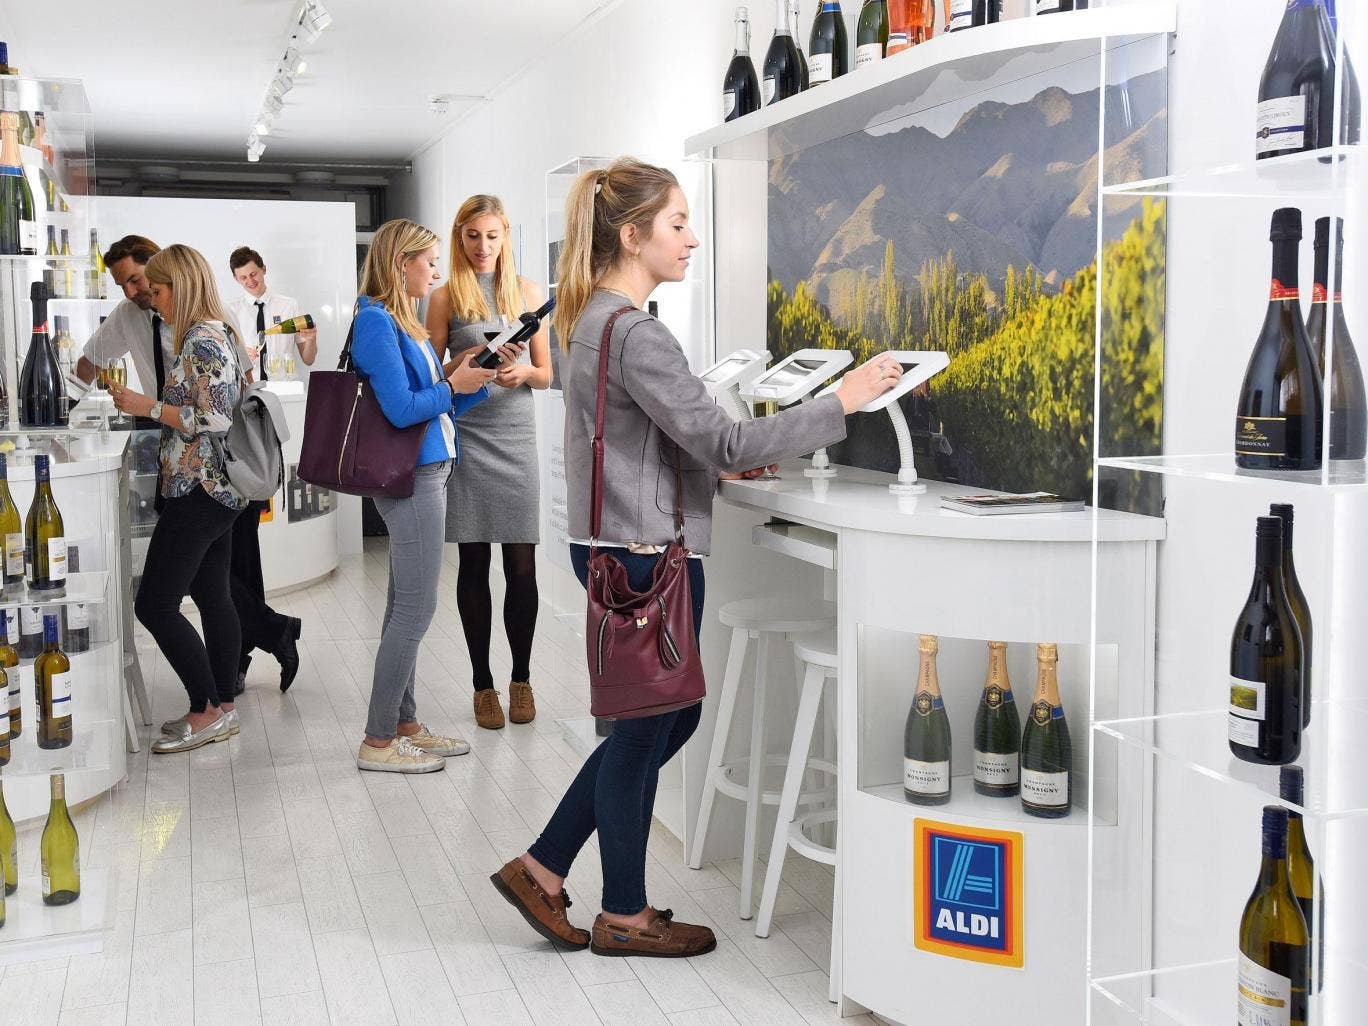 a815a23ea3c The pop up is the first of its kind from Aldi and has been created in  response to Aldi s increasingly popular wine range and to celebrate the  launch of the ...